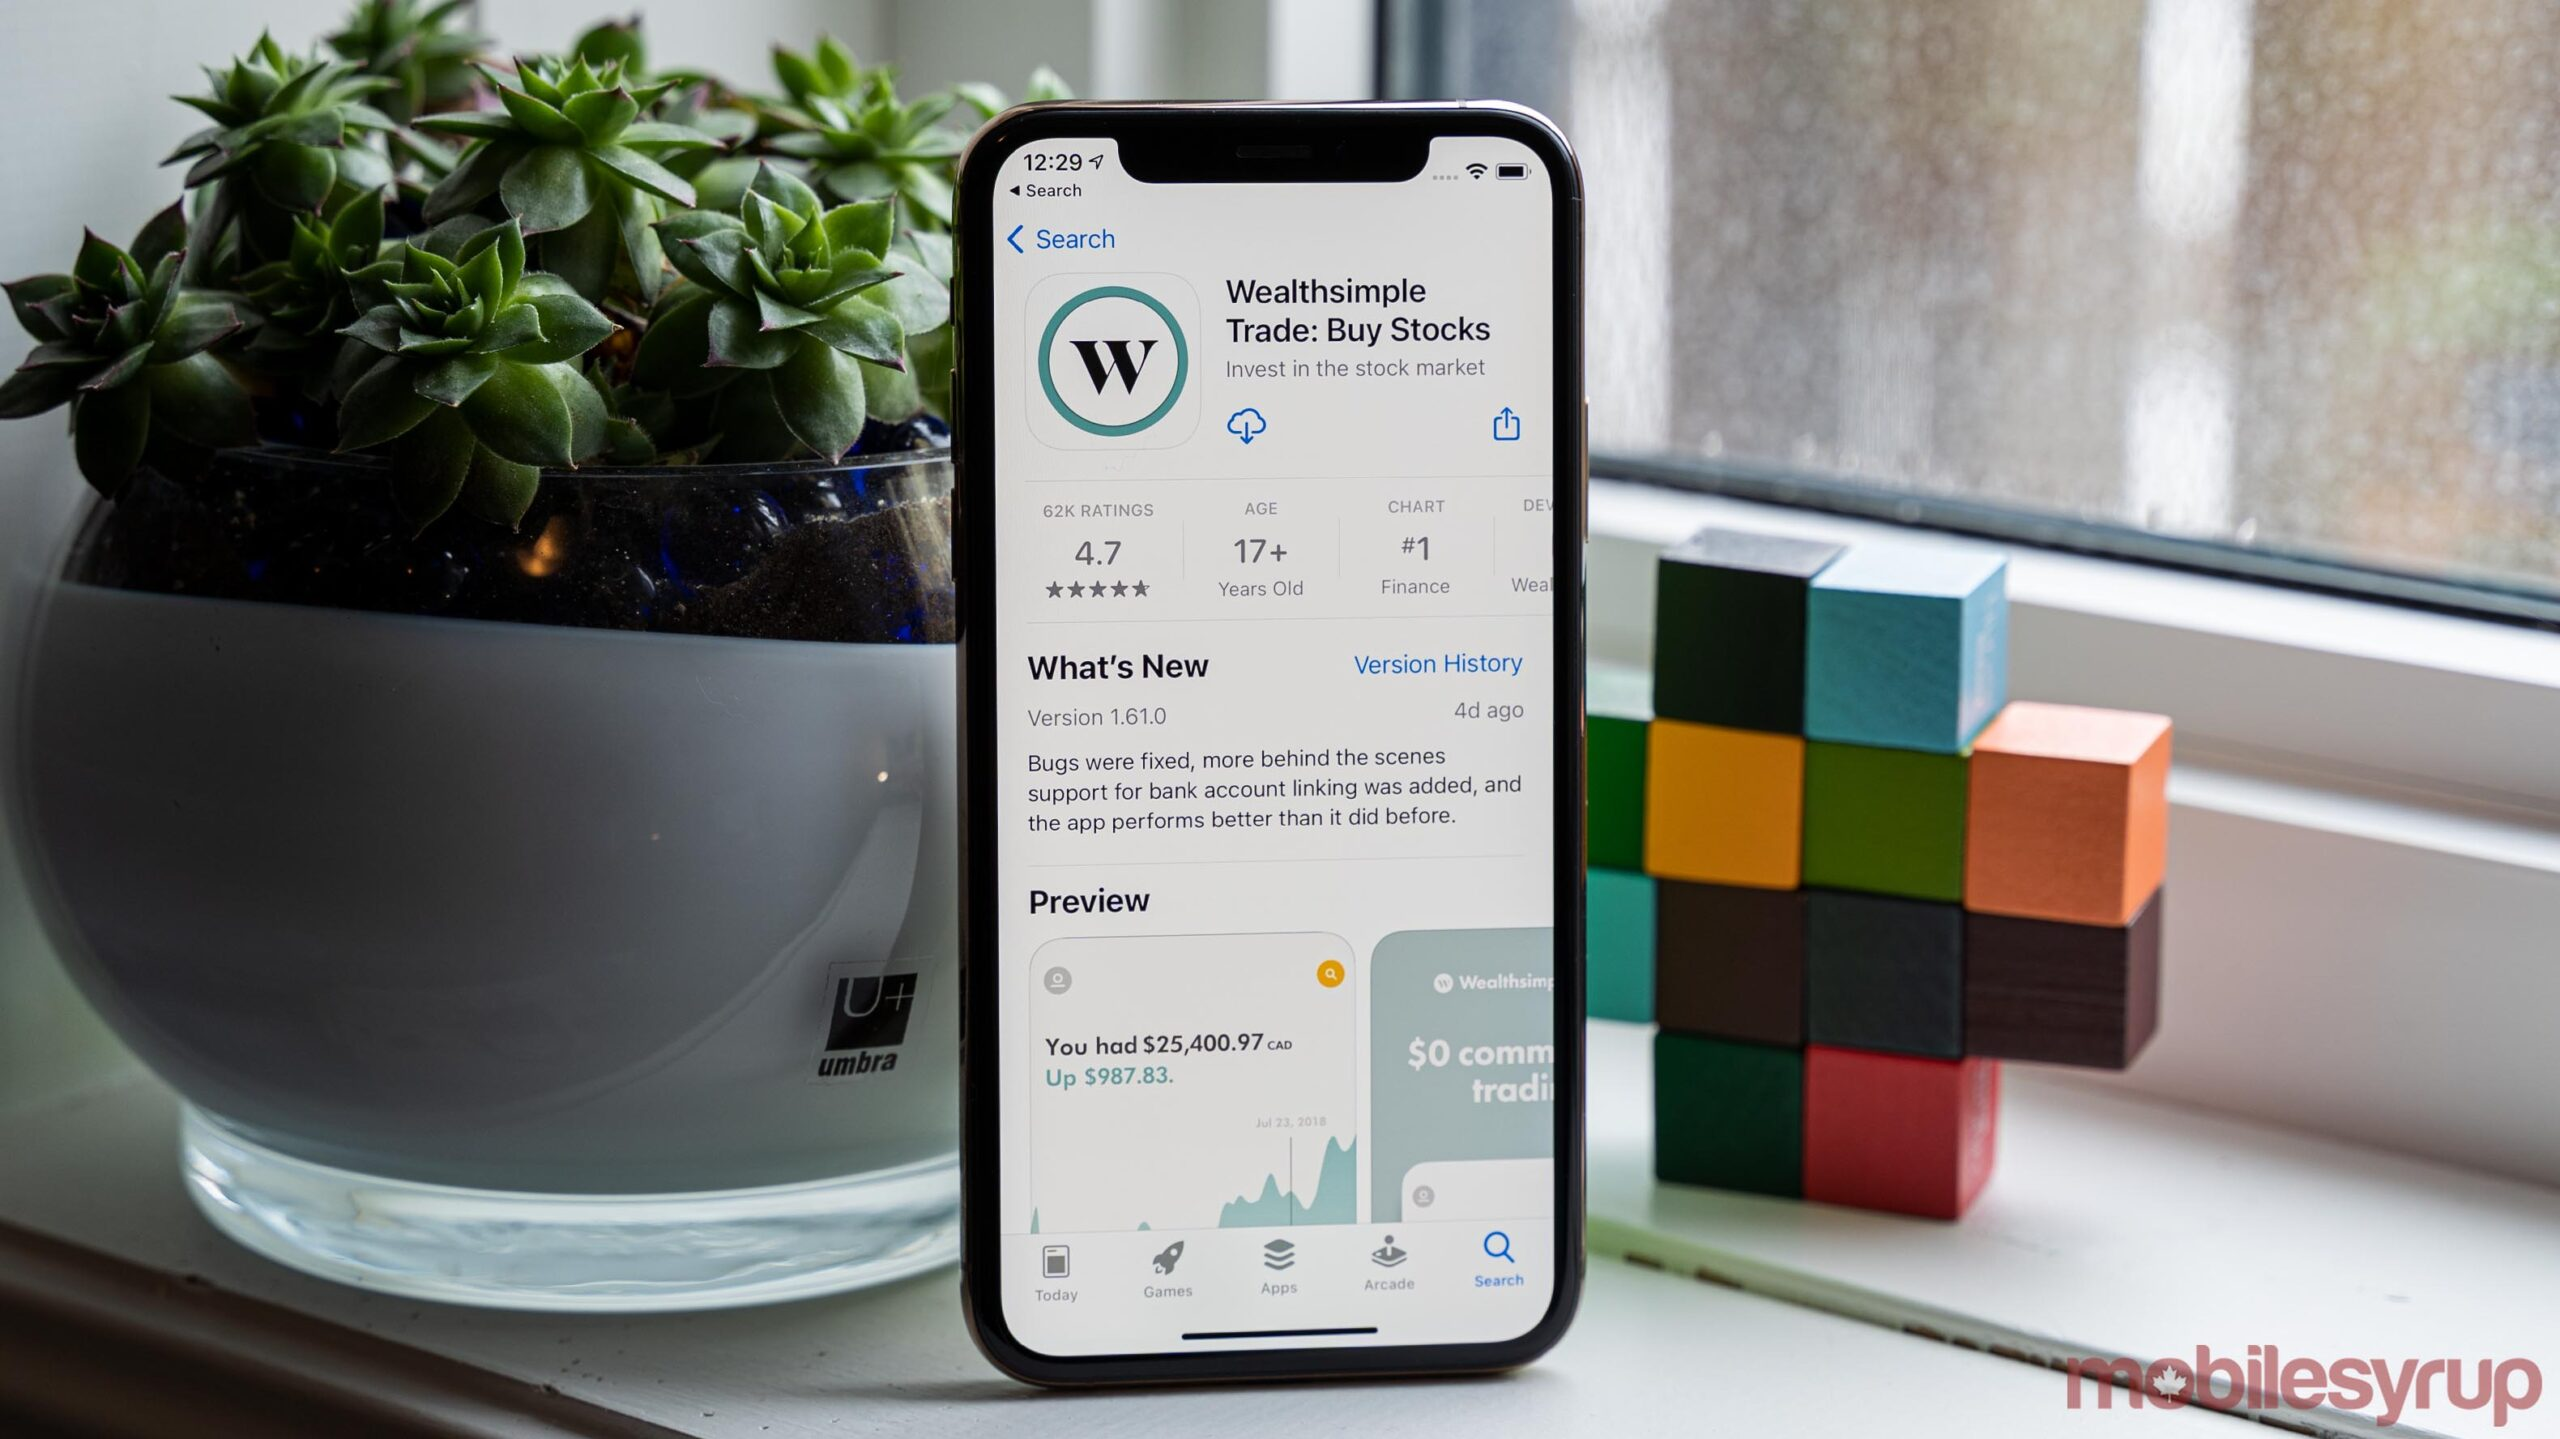 Wealthsimple Trade app on the App Store